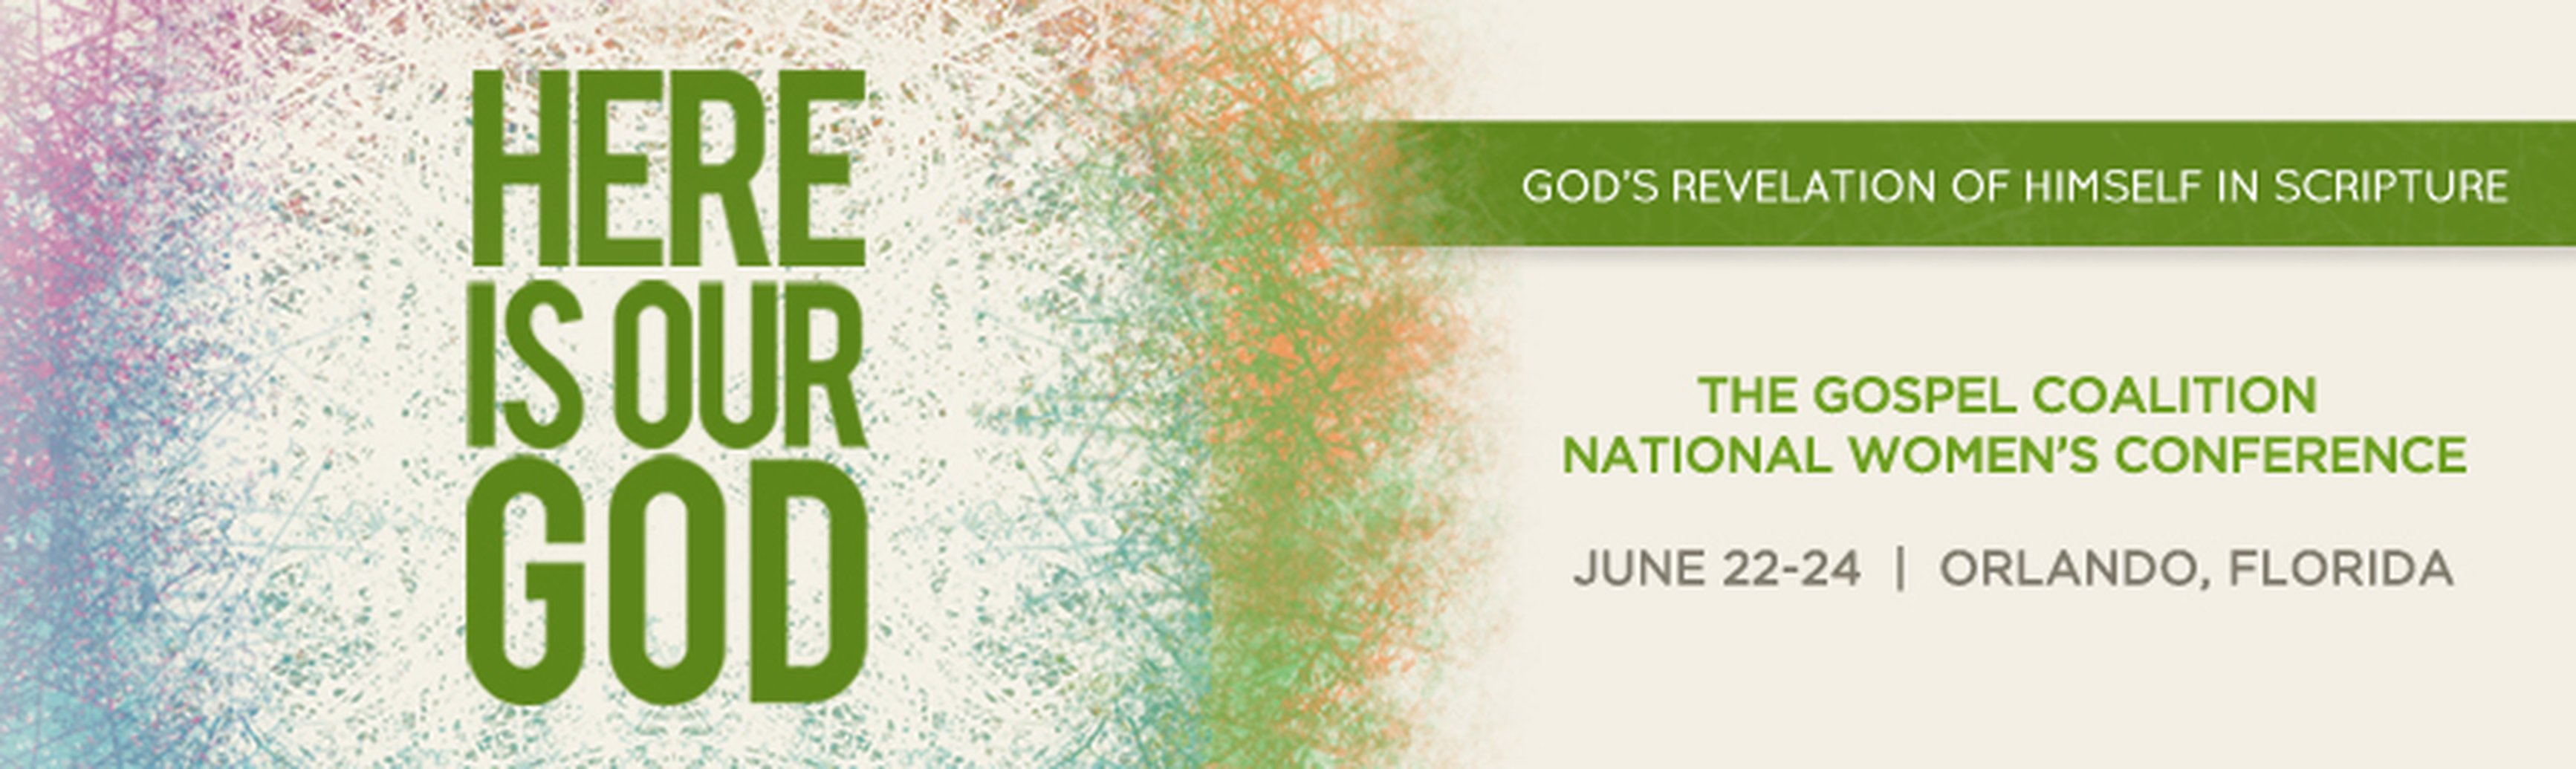 On Location - The Gospel Coalition National Women's Conference - June 22-24